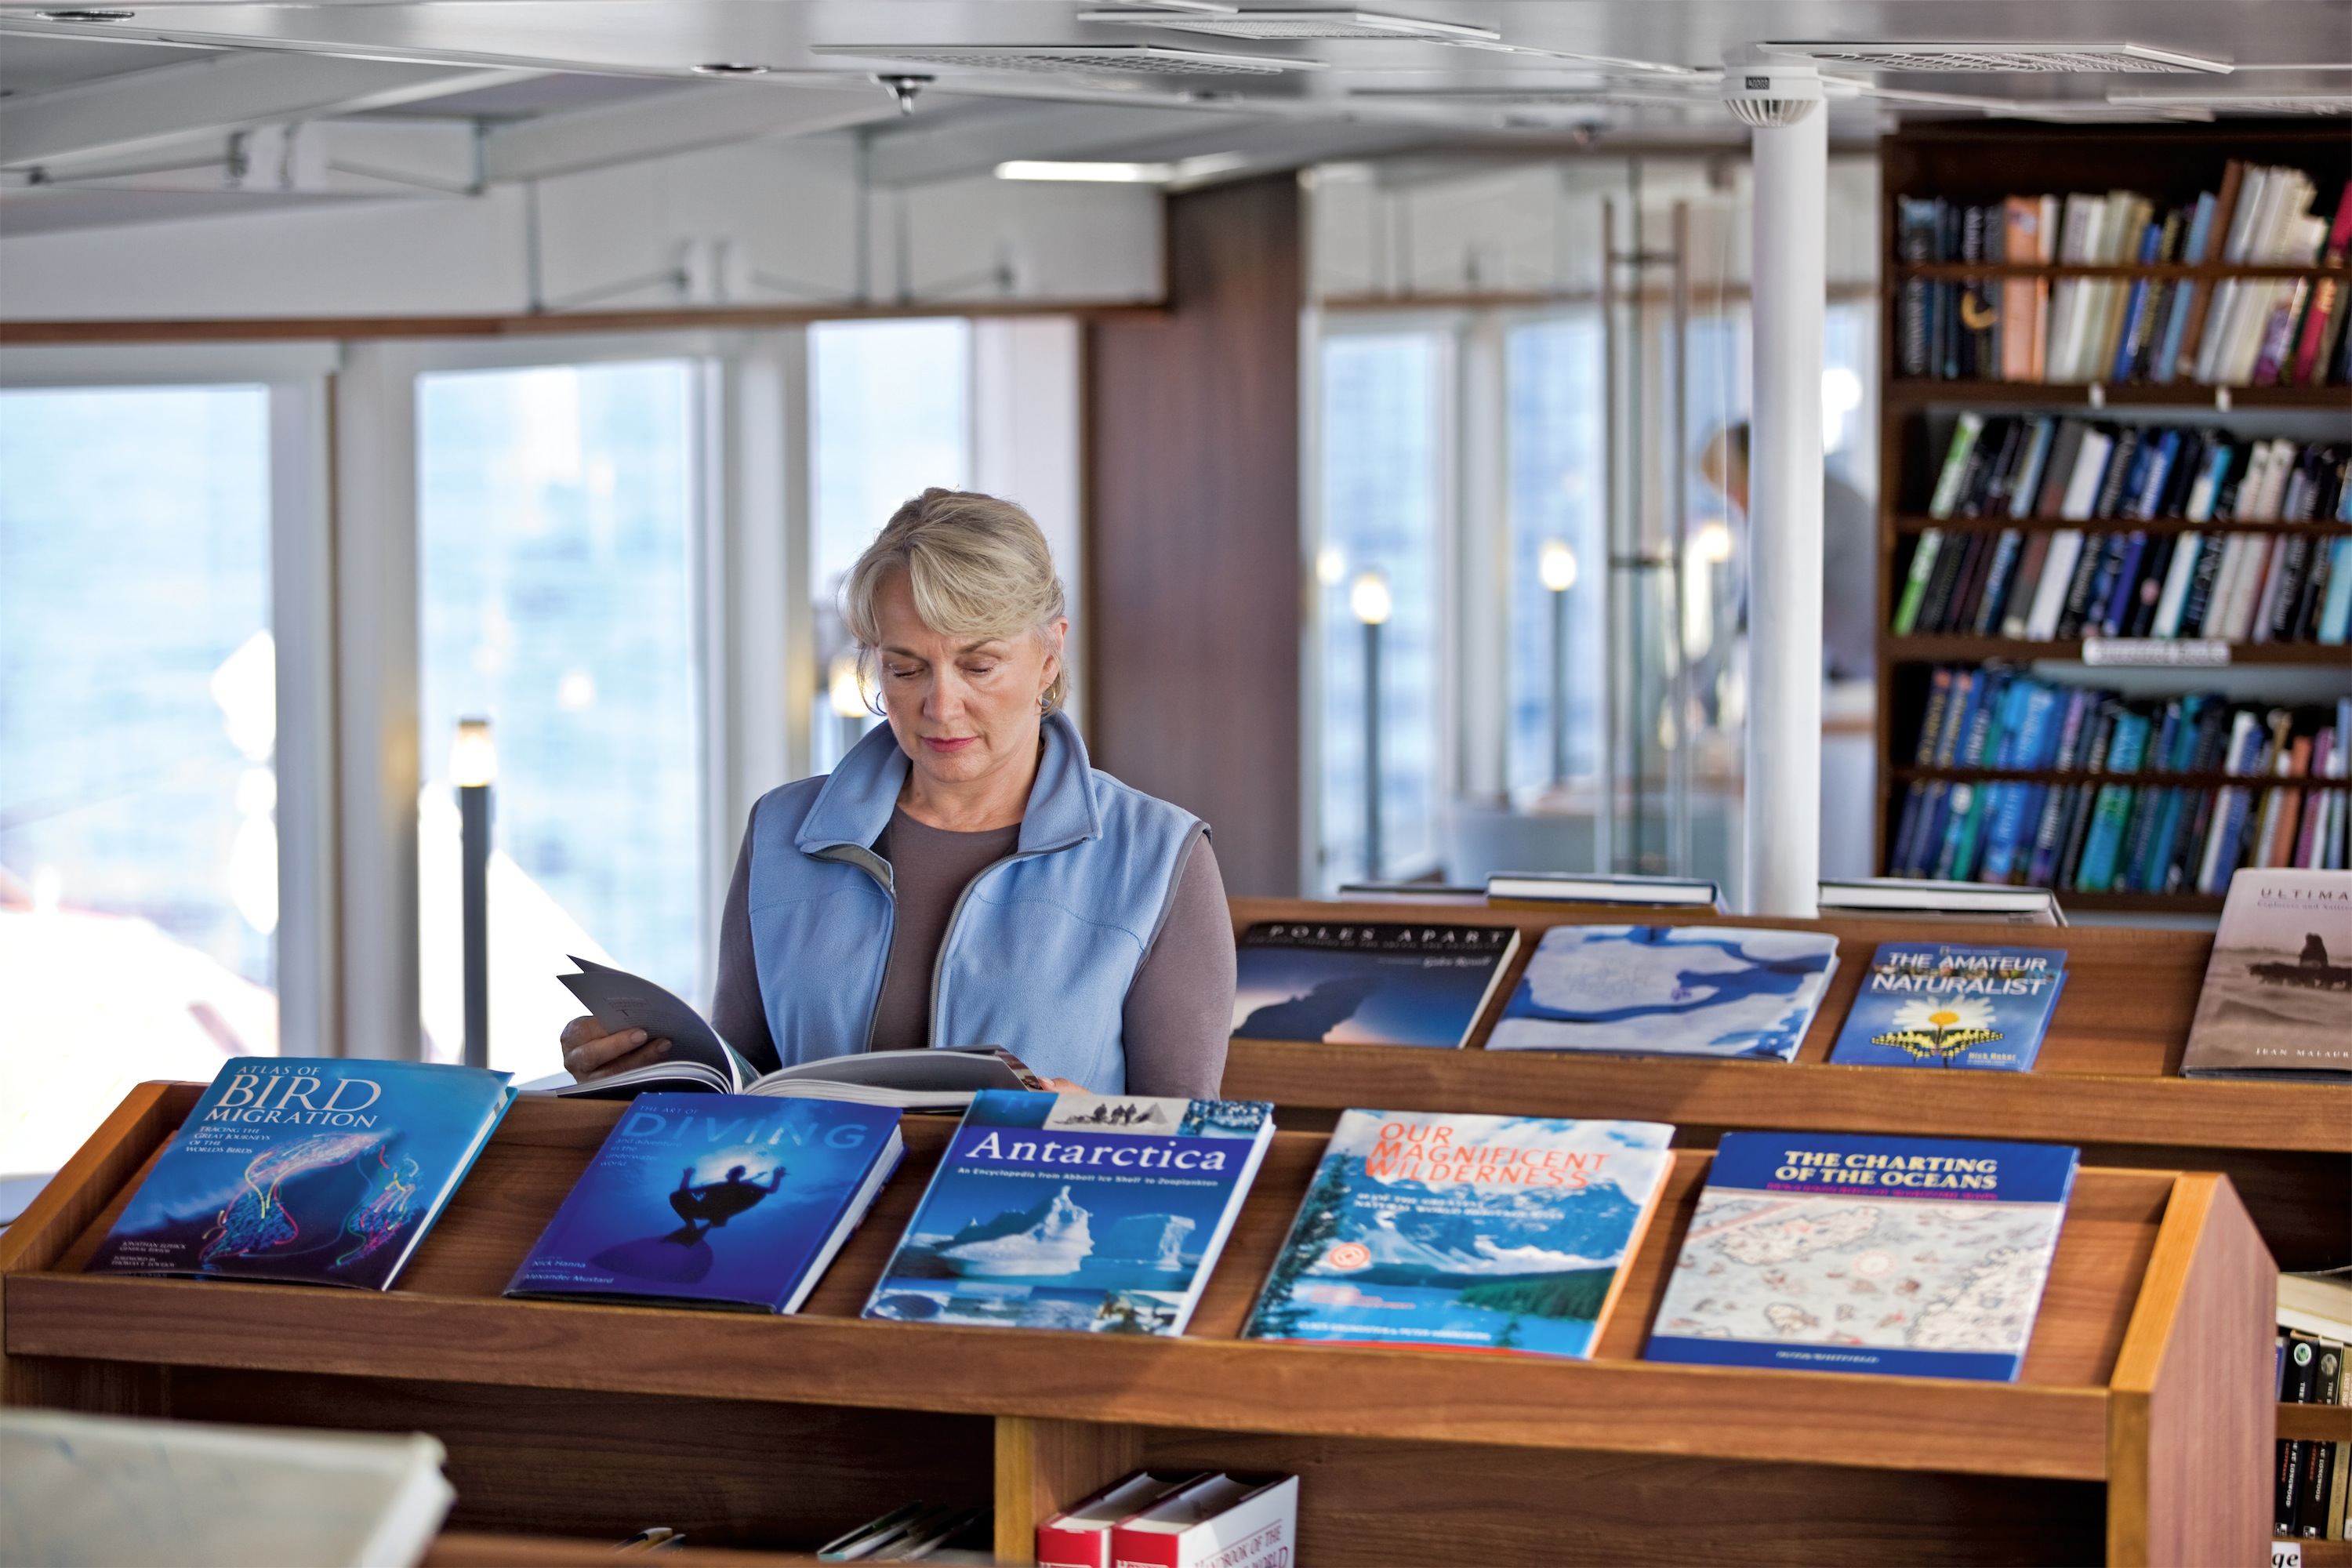 Lindblad Expeditions National Geographic Explorer Interior Library 2.jpg